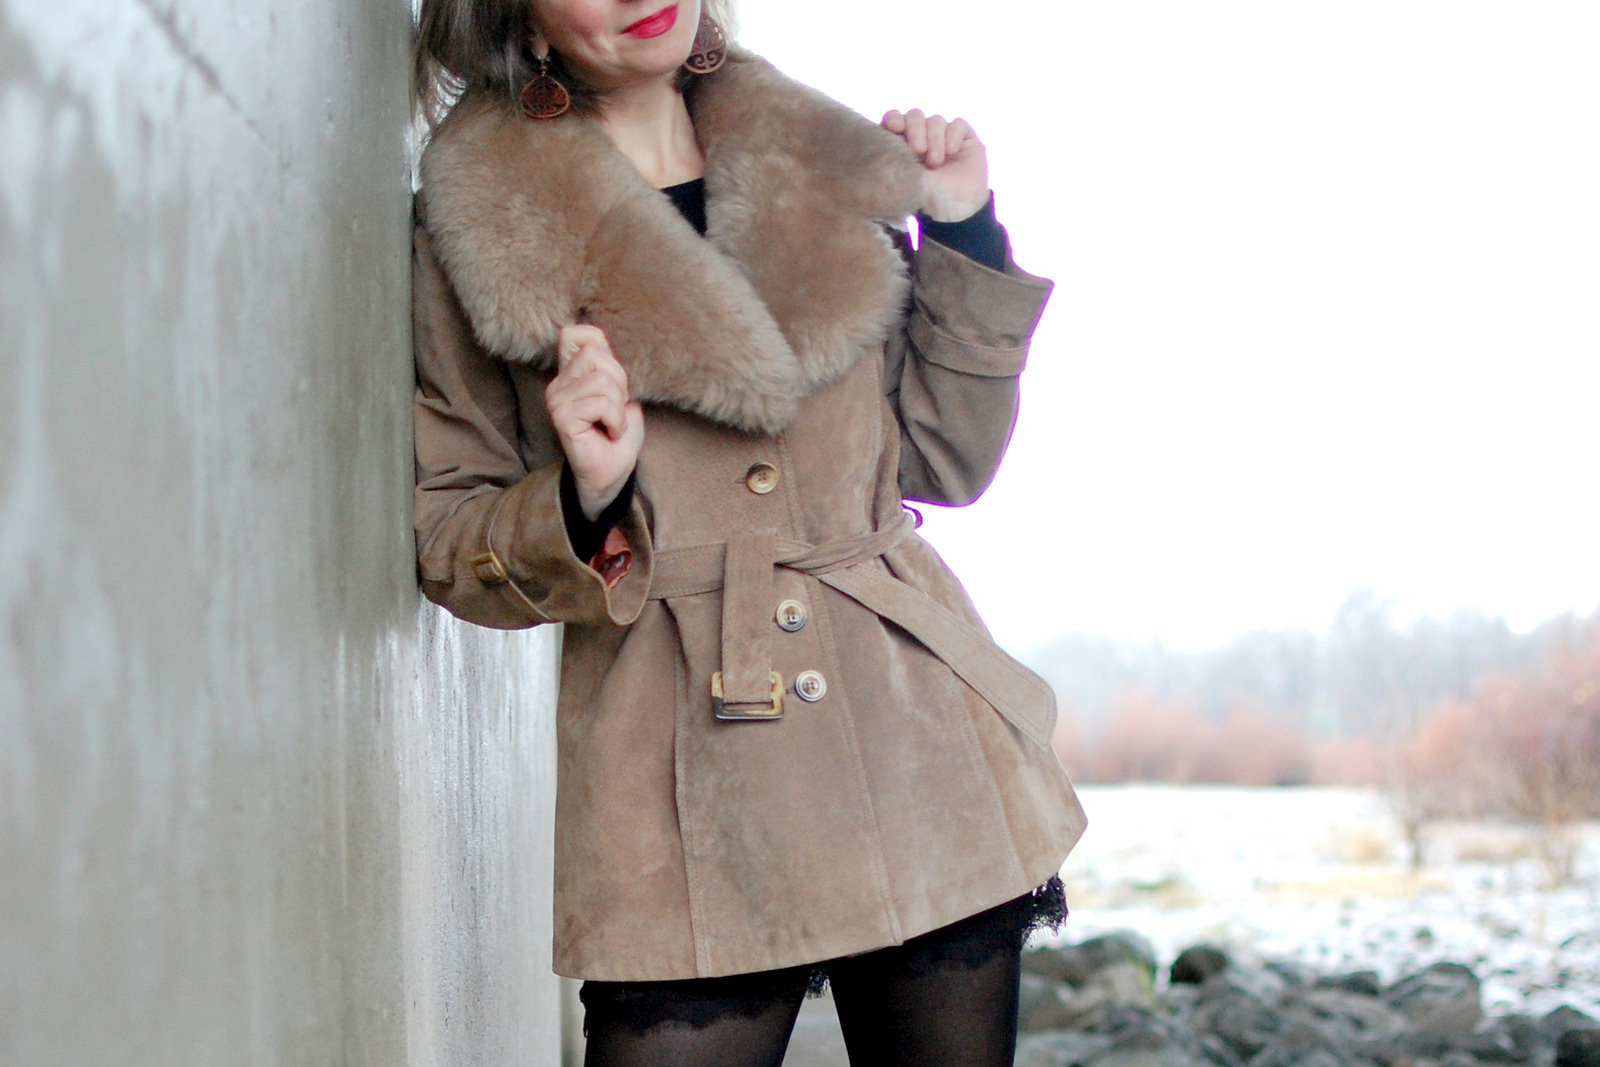 faux fur suede vintage jacket daily outfit blog ootd whatiwore2day